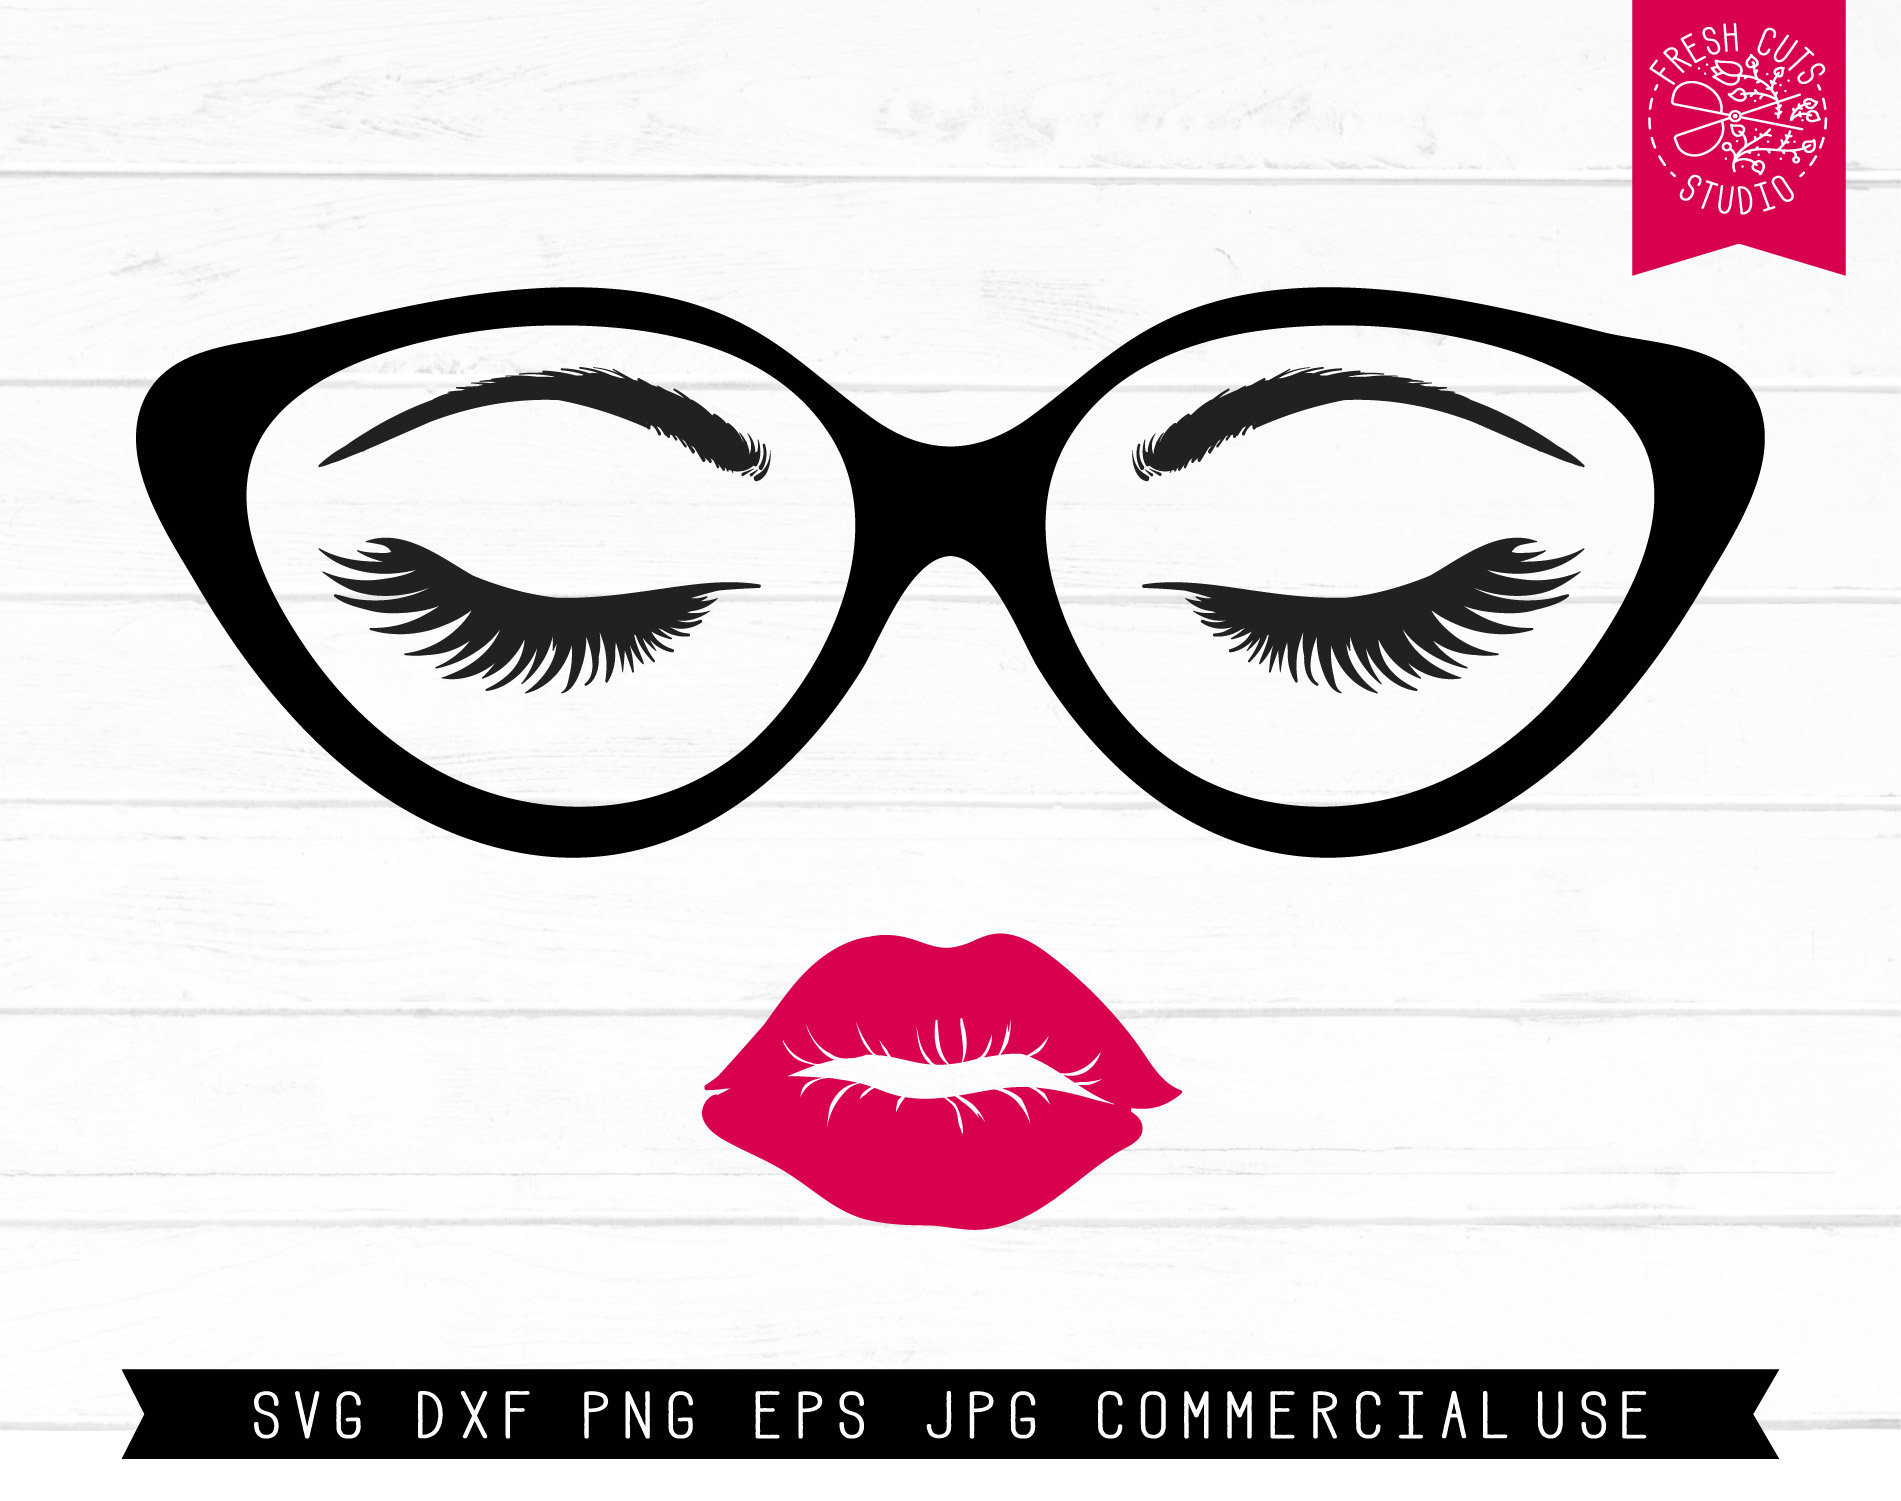 Svg lips and lashes. Eyeglasses clipart eye brows